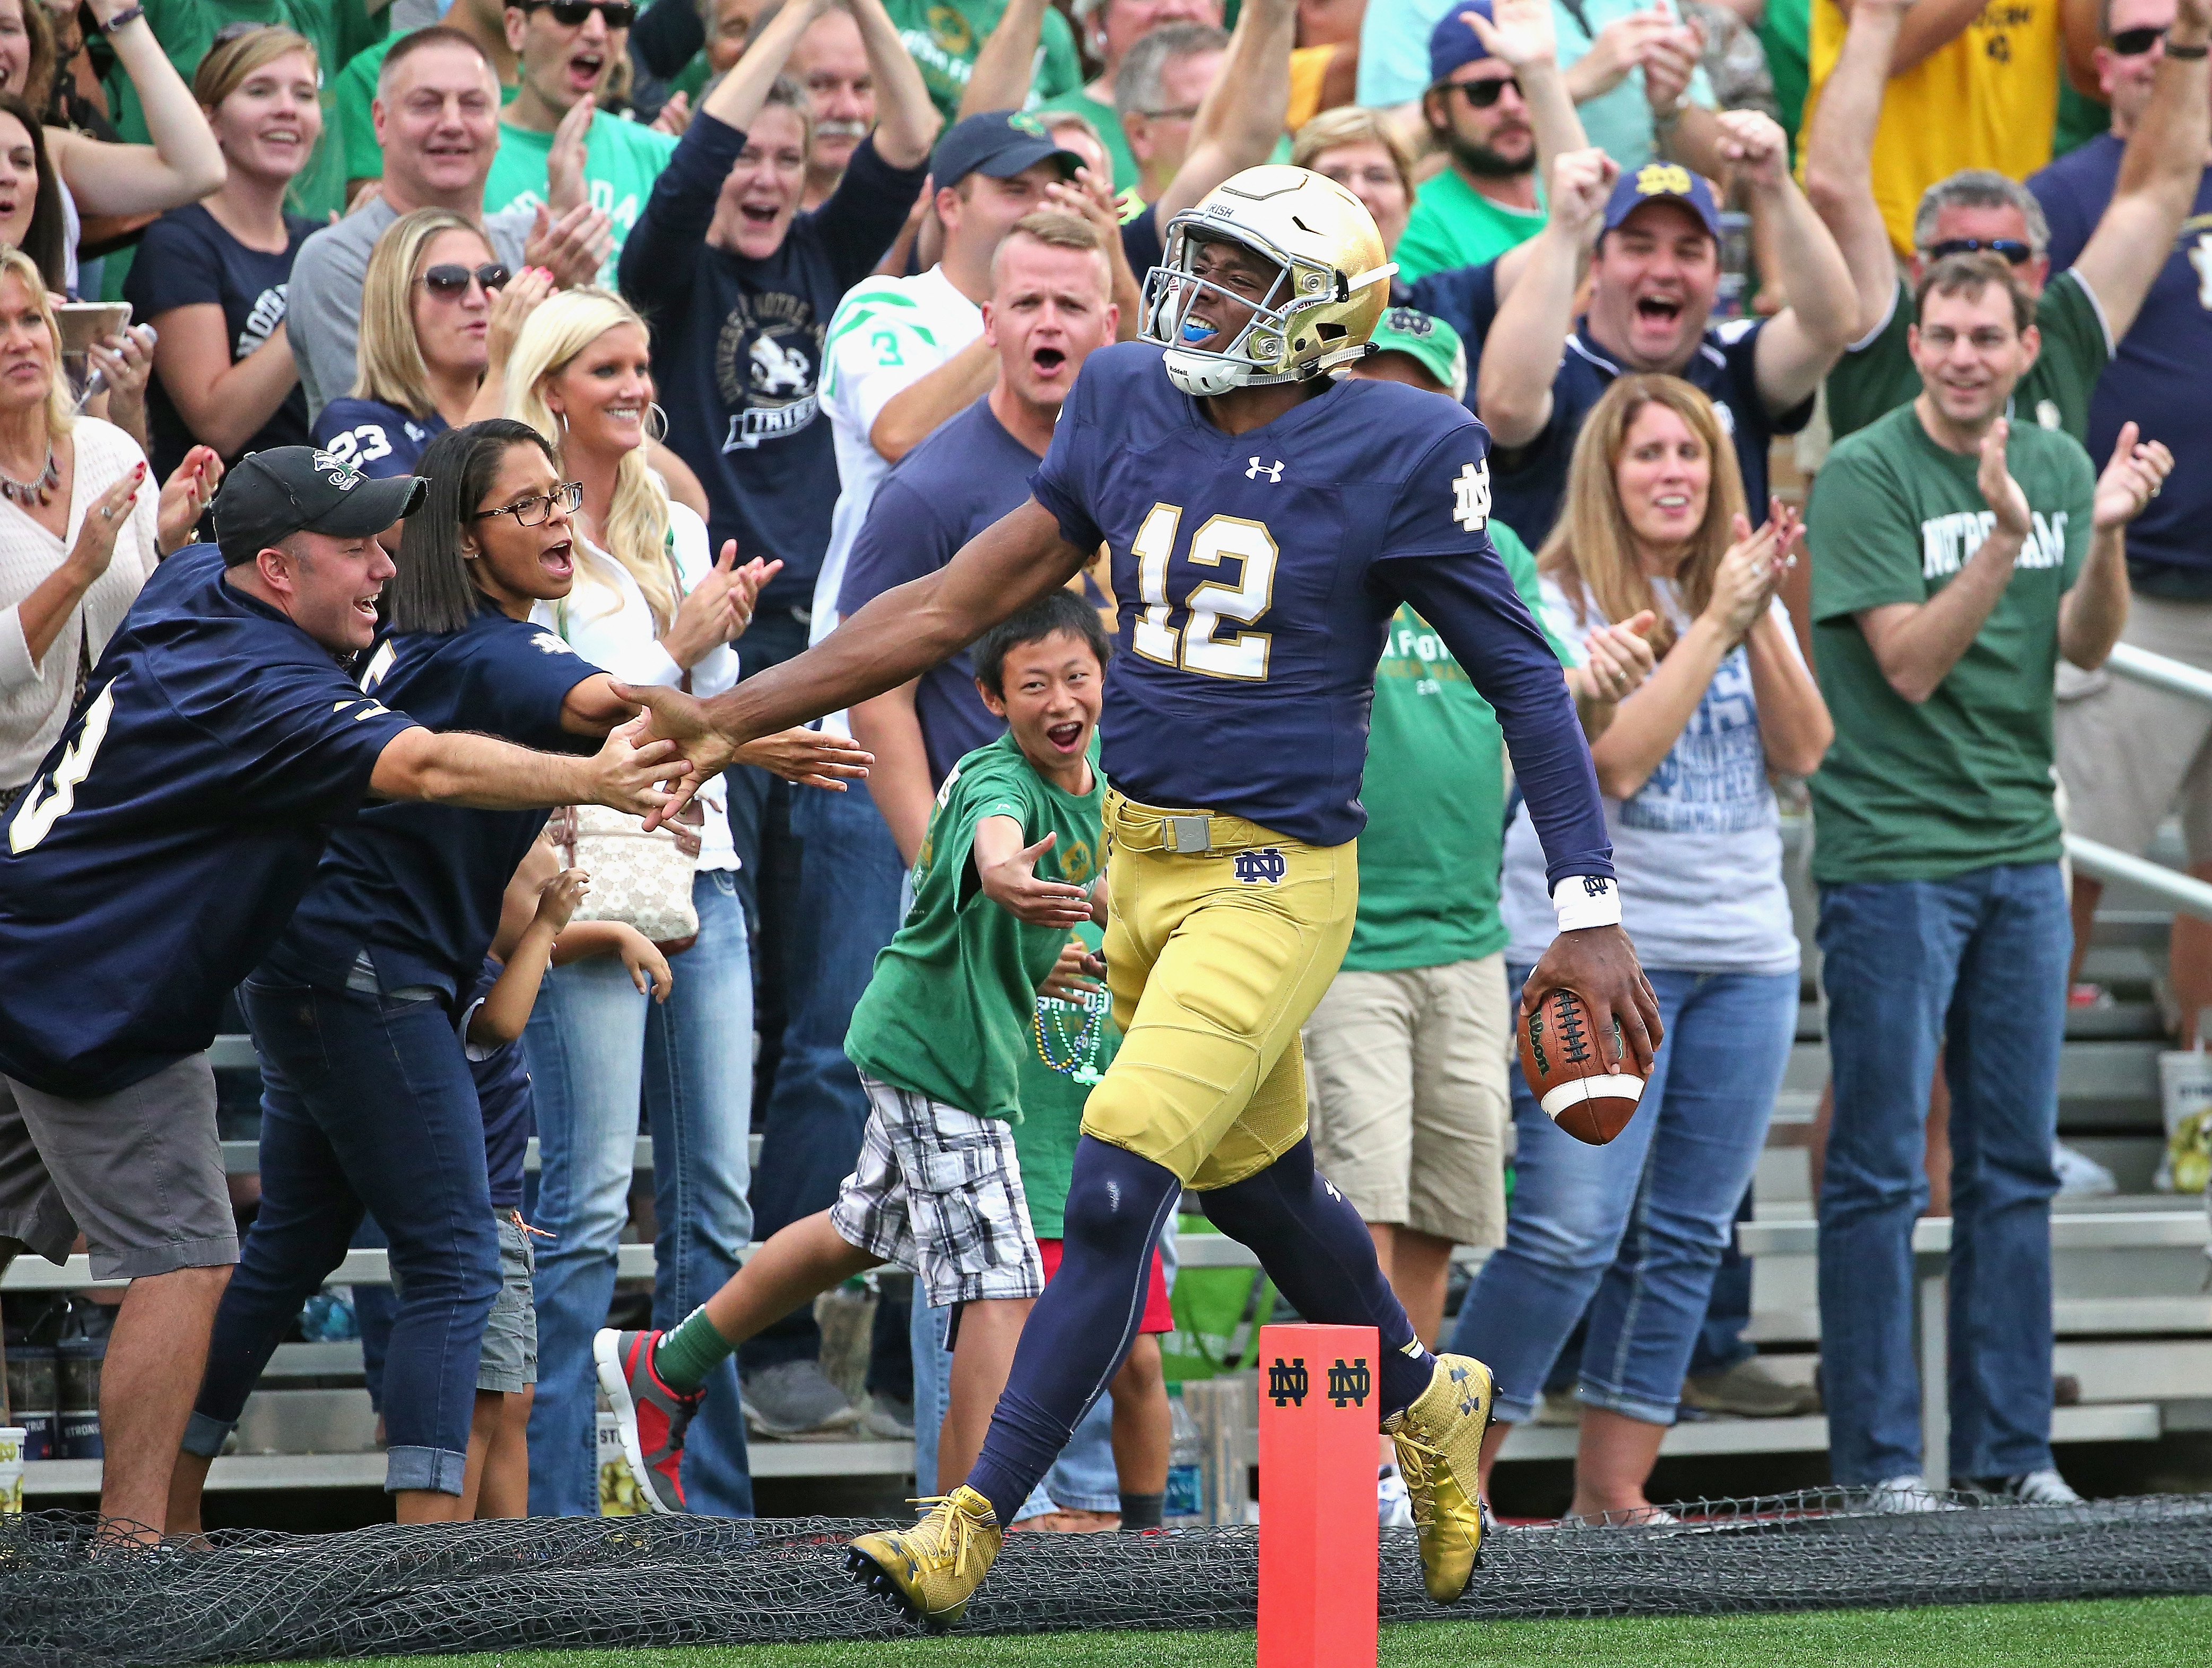 Behind Wimbush, Irish Poised for 2017 Bounceback